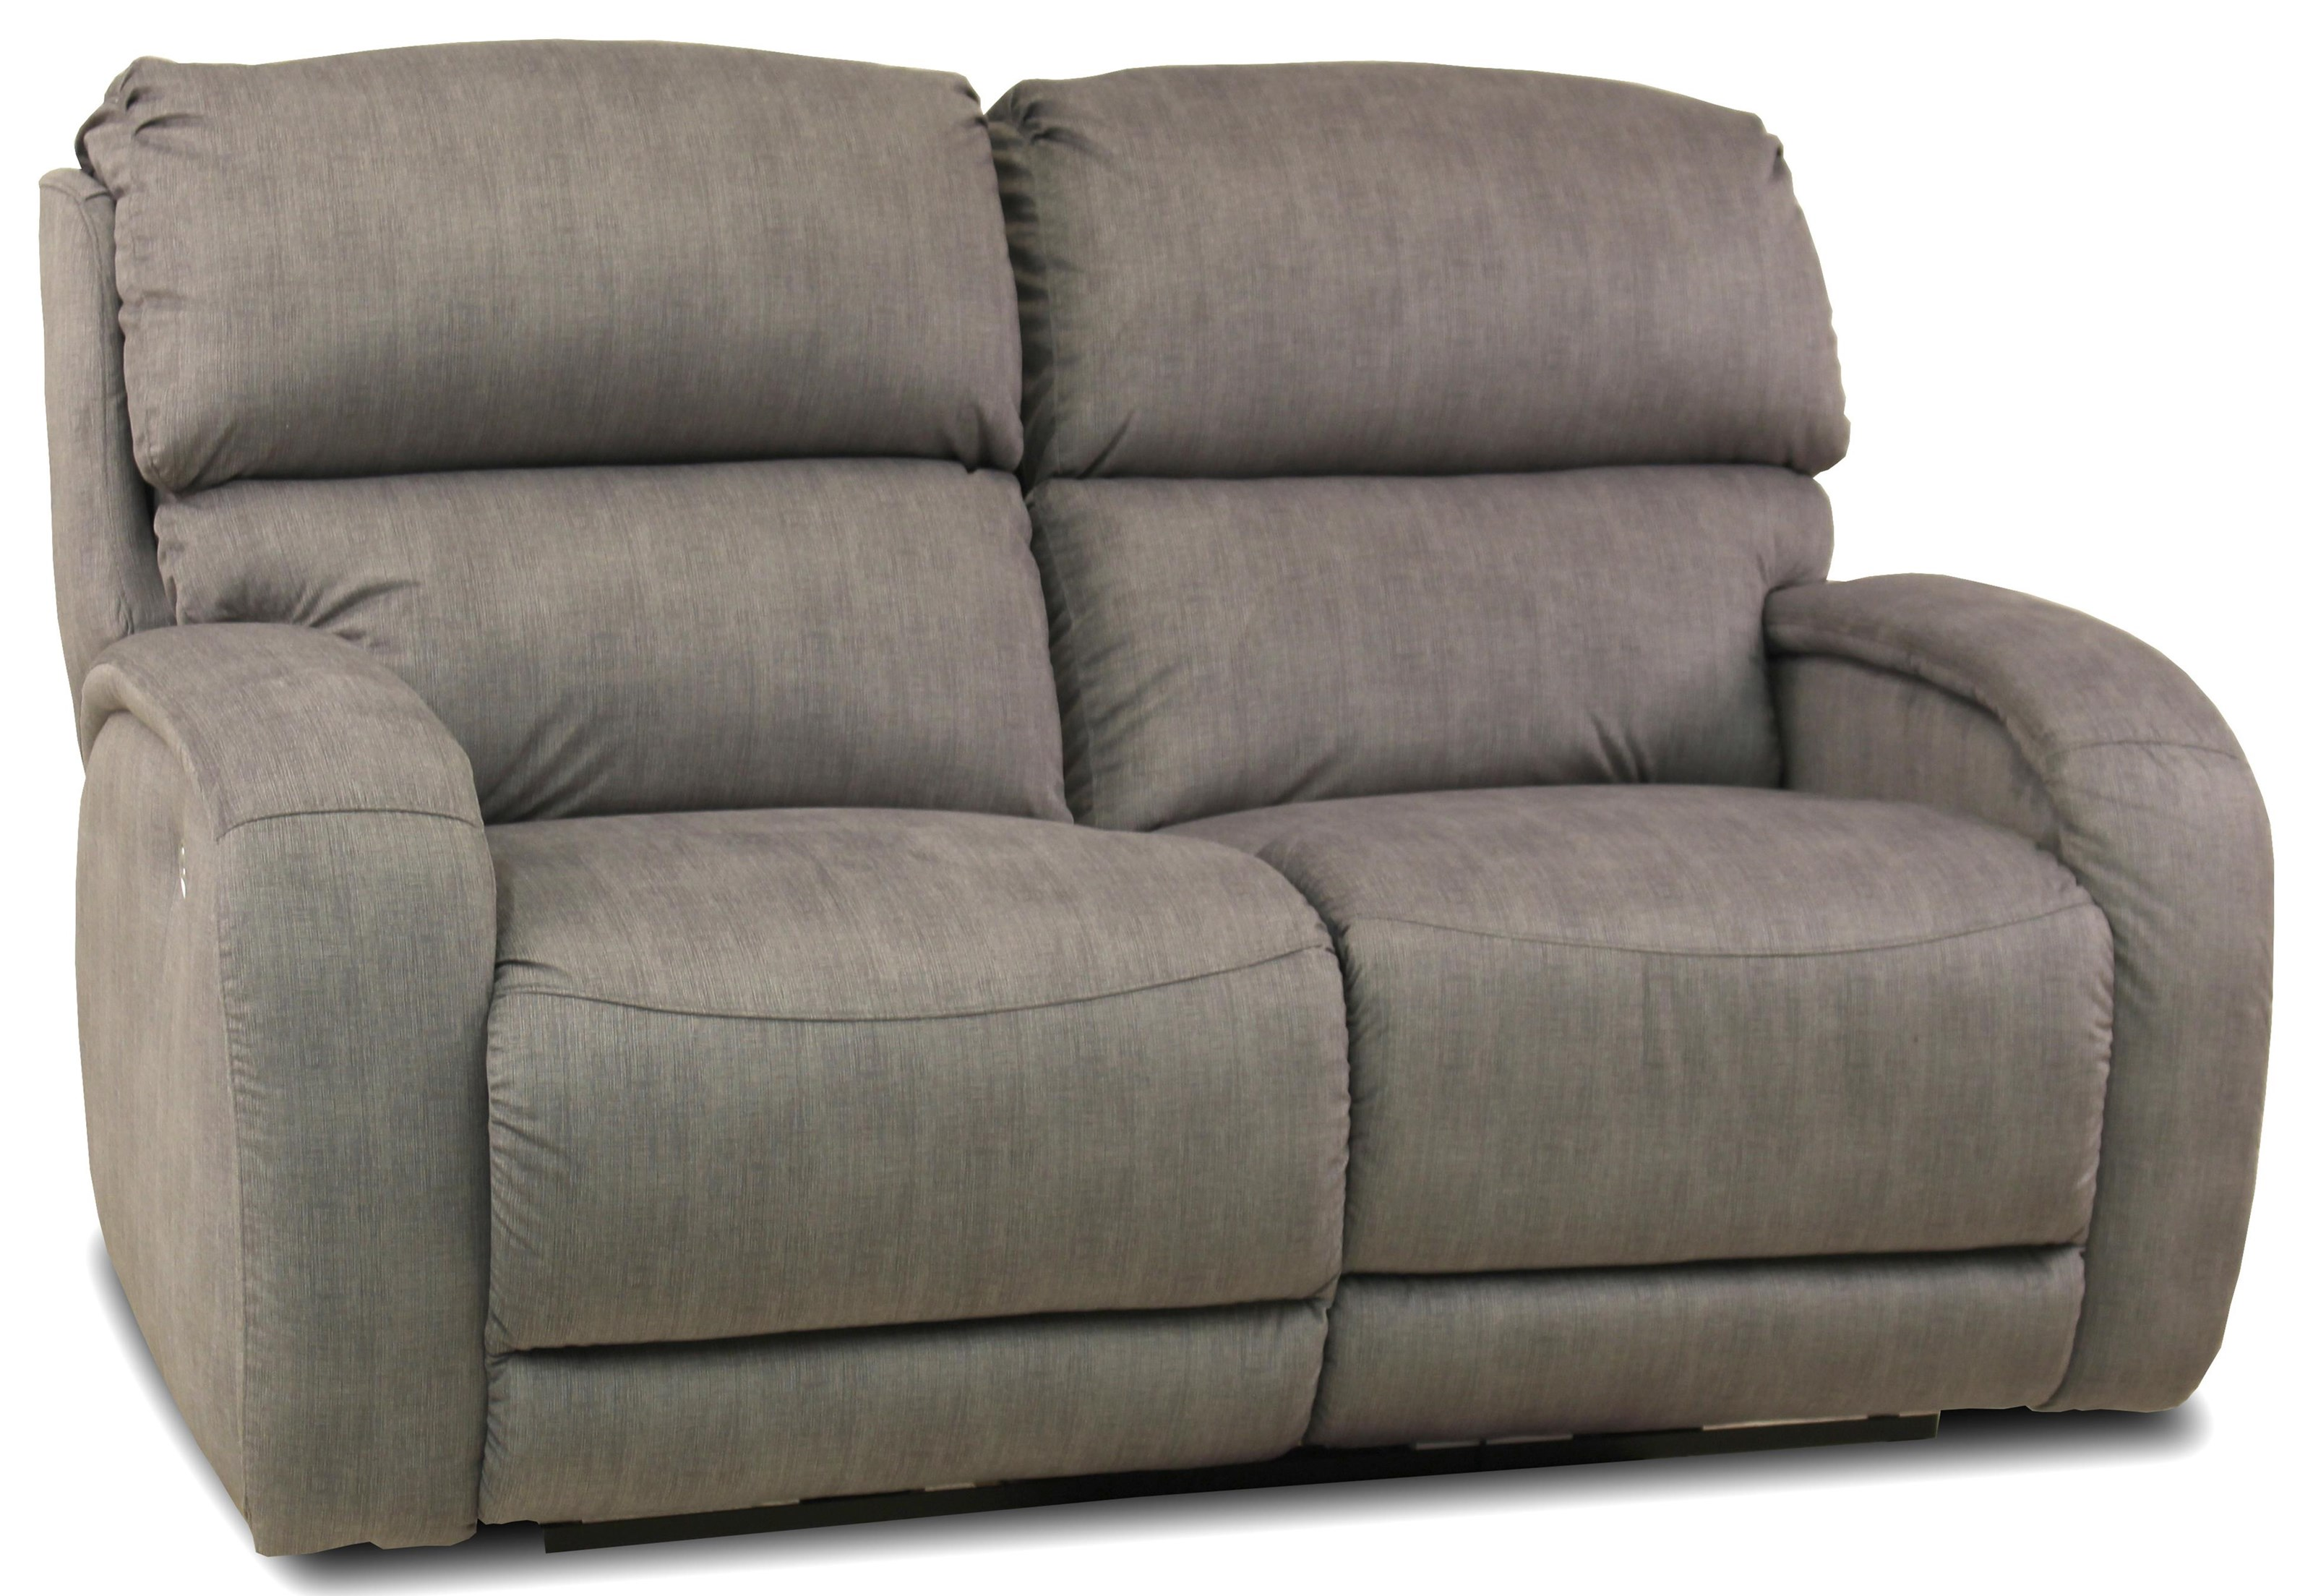 Fandango Double Reclining Loveseat by Southern Motion at Ruby Gordon Home